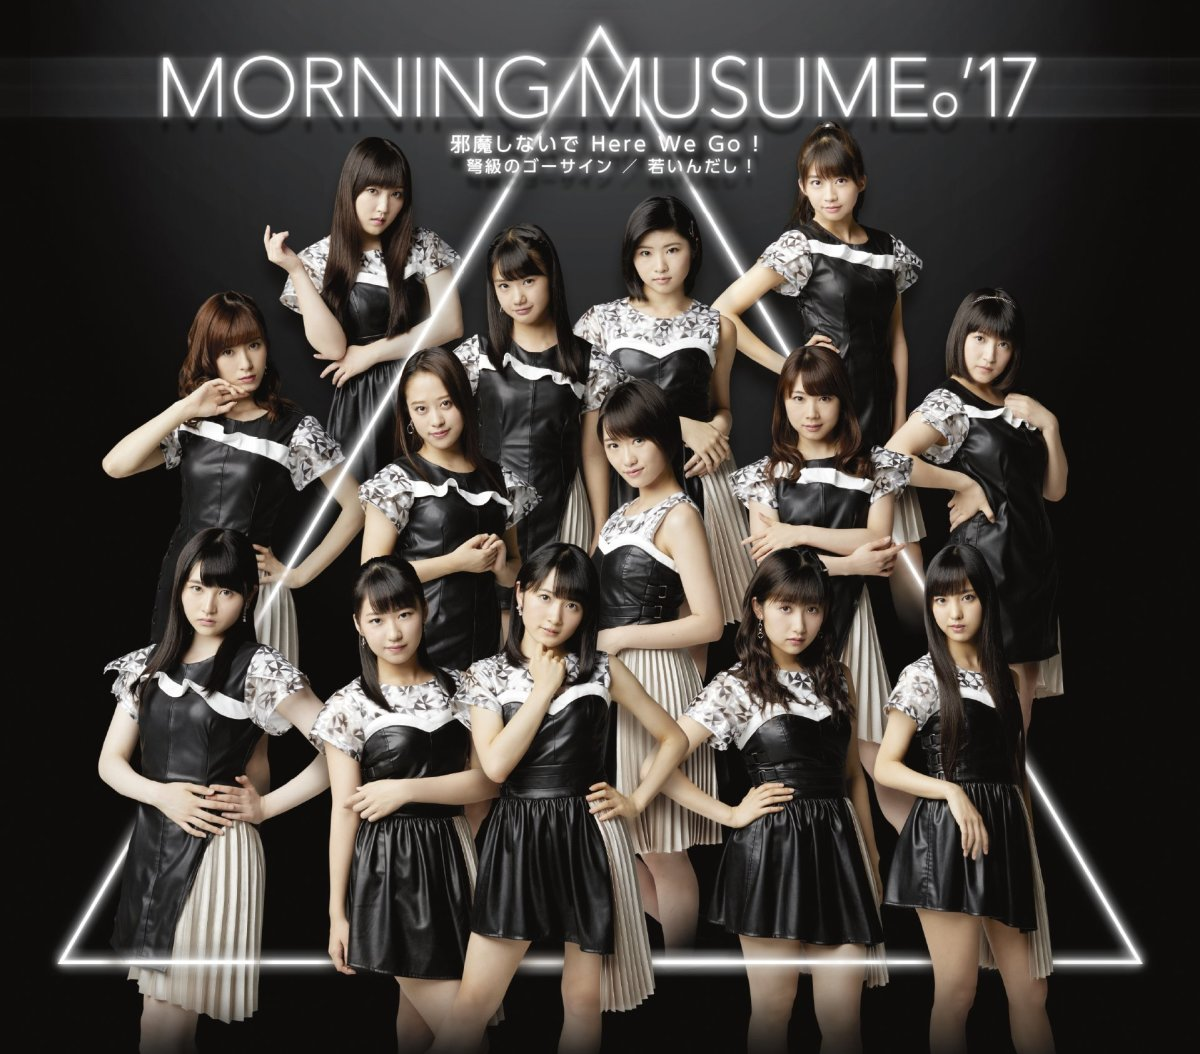 How Did Morning Musume Become Morning Musume 17?